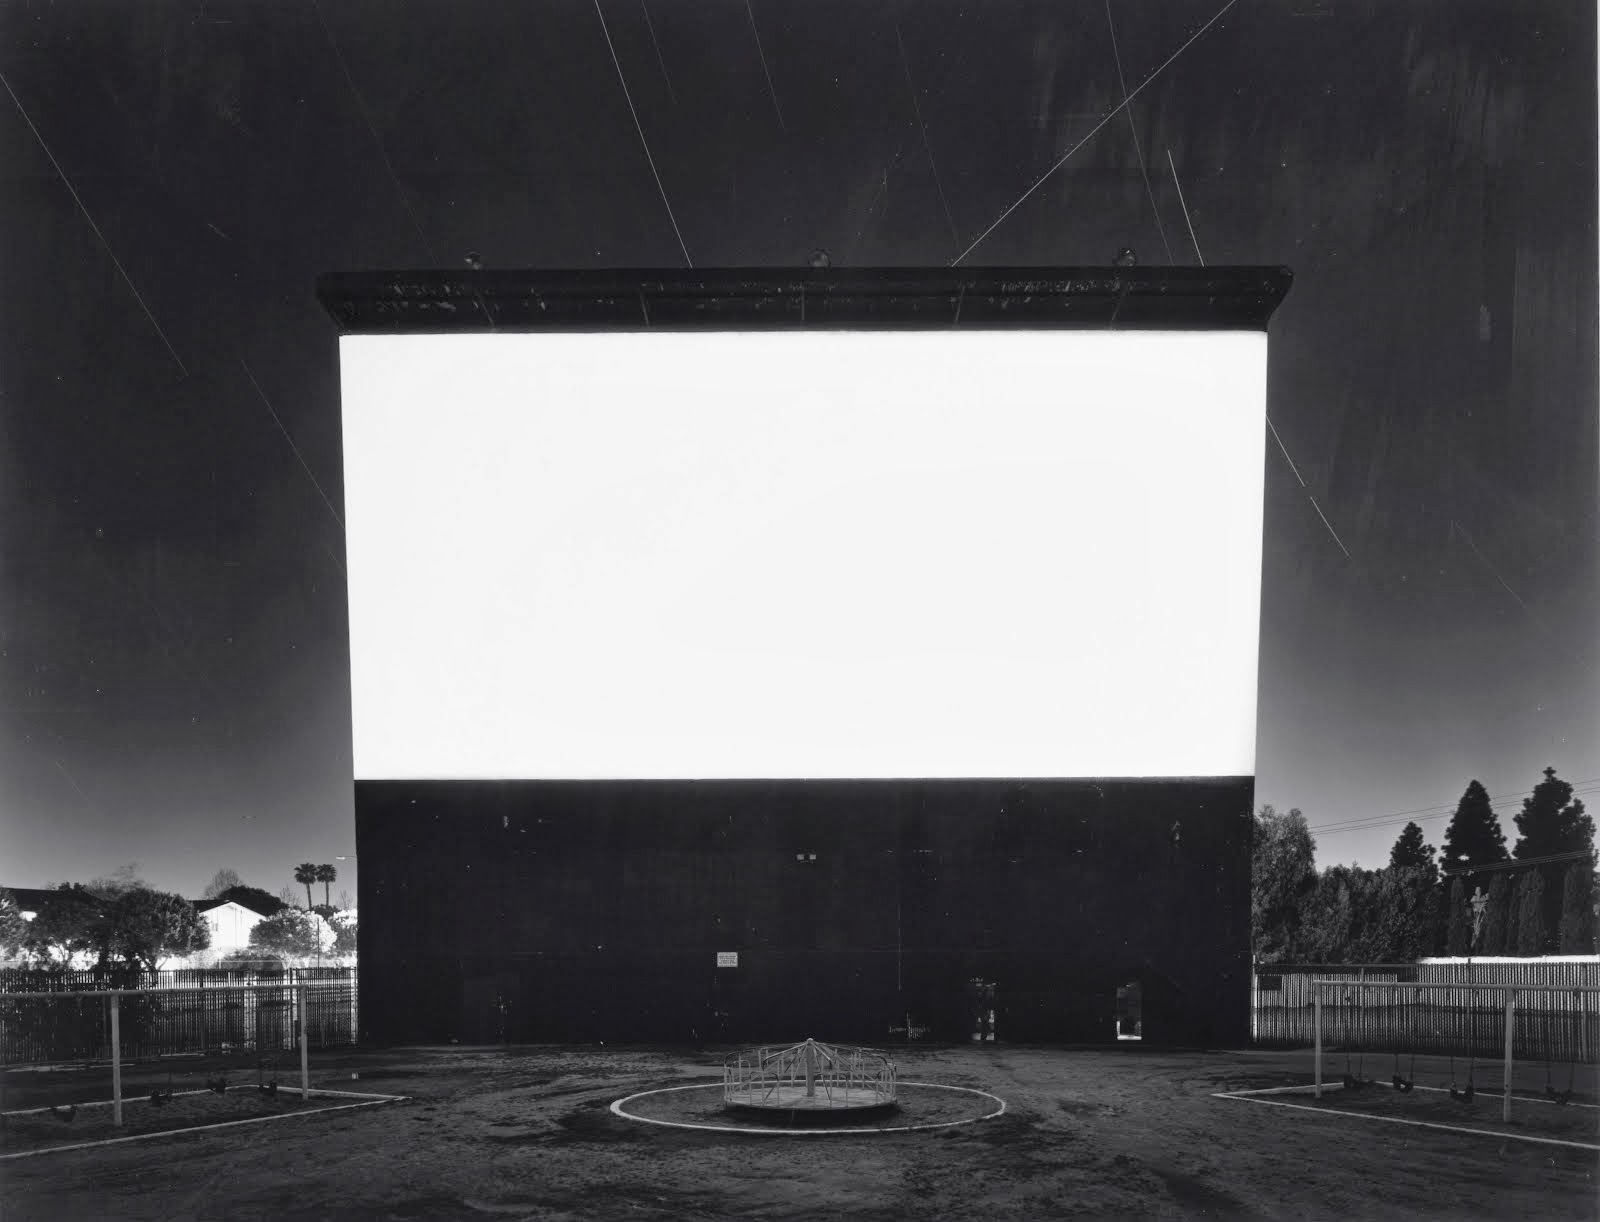 Hiroshi Sugimoto. Theaters. Photography | Fotografía